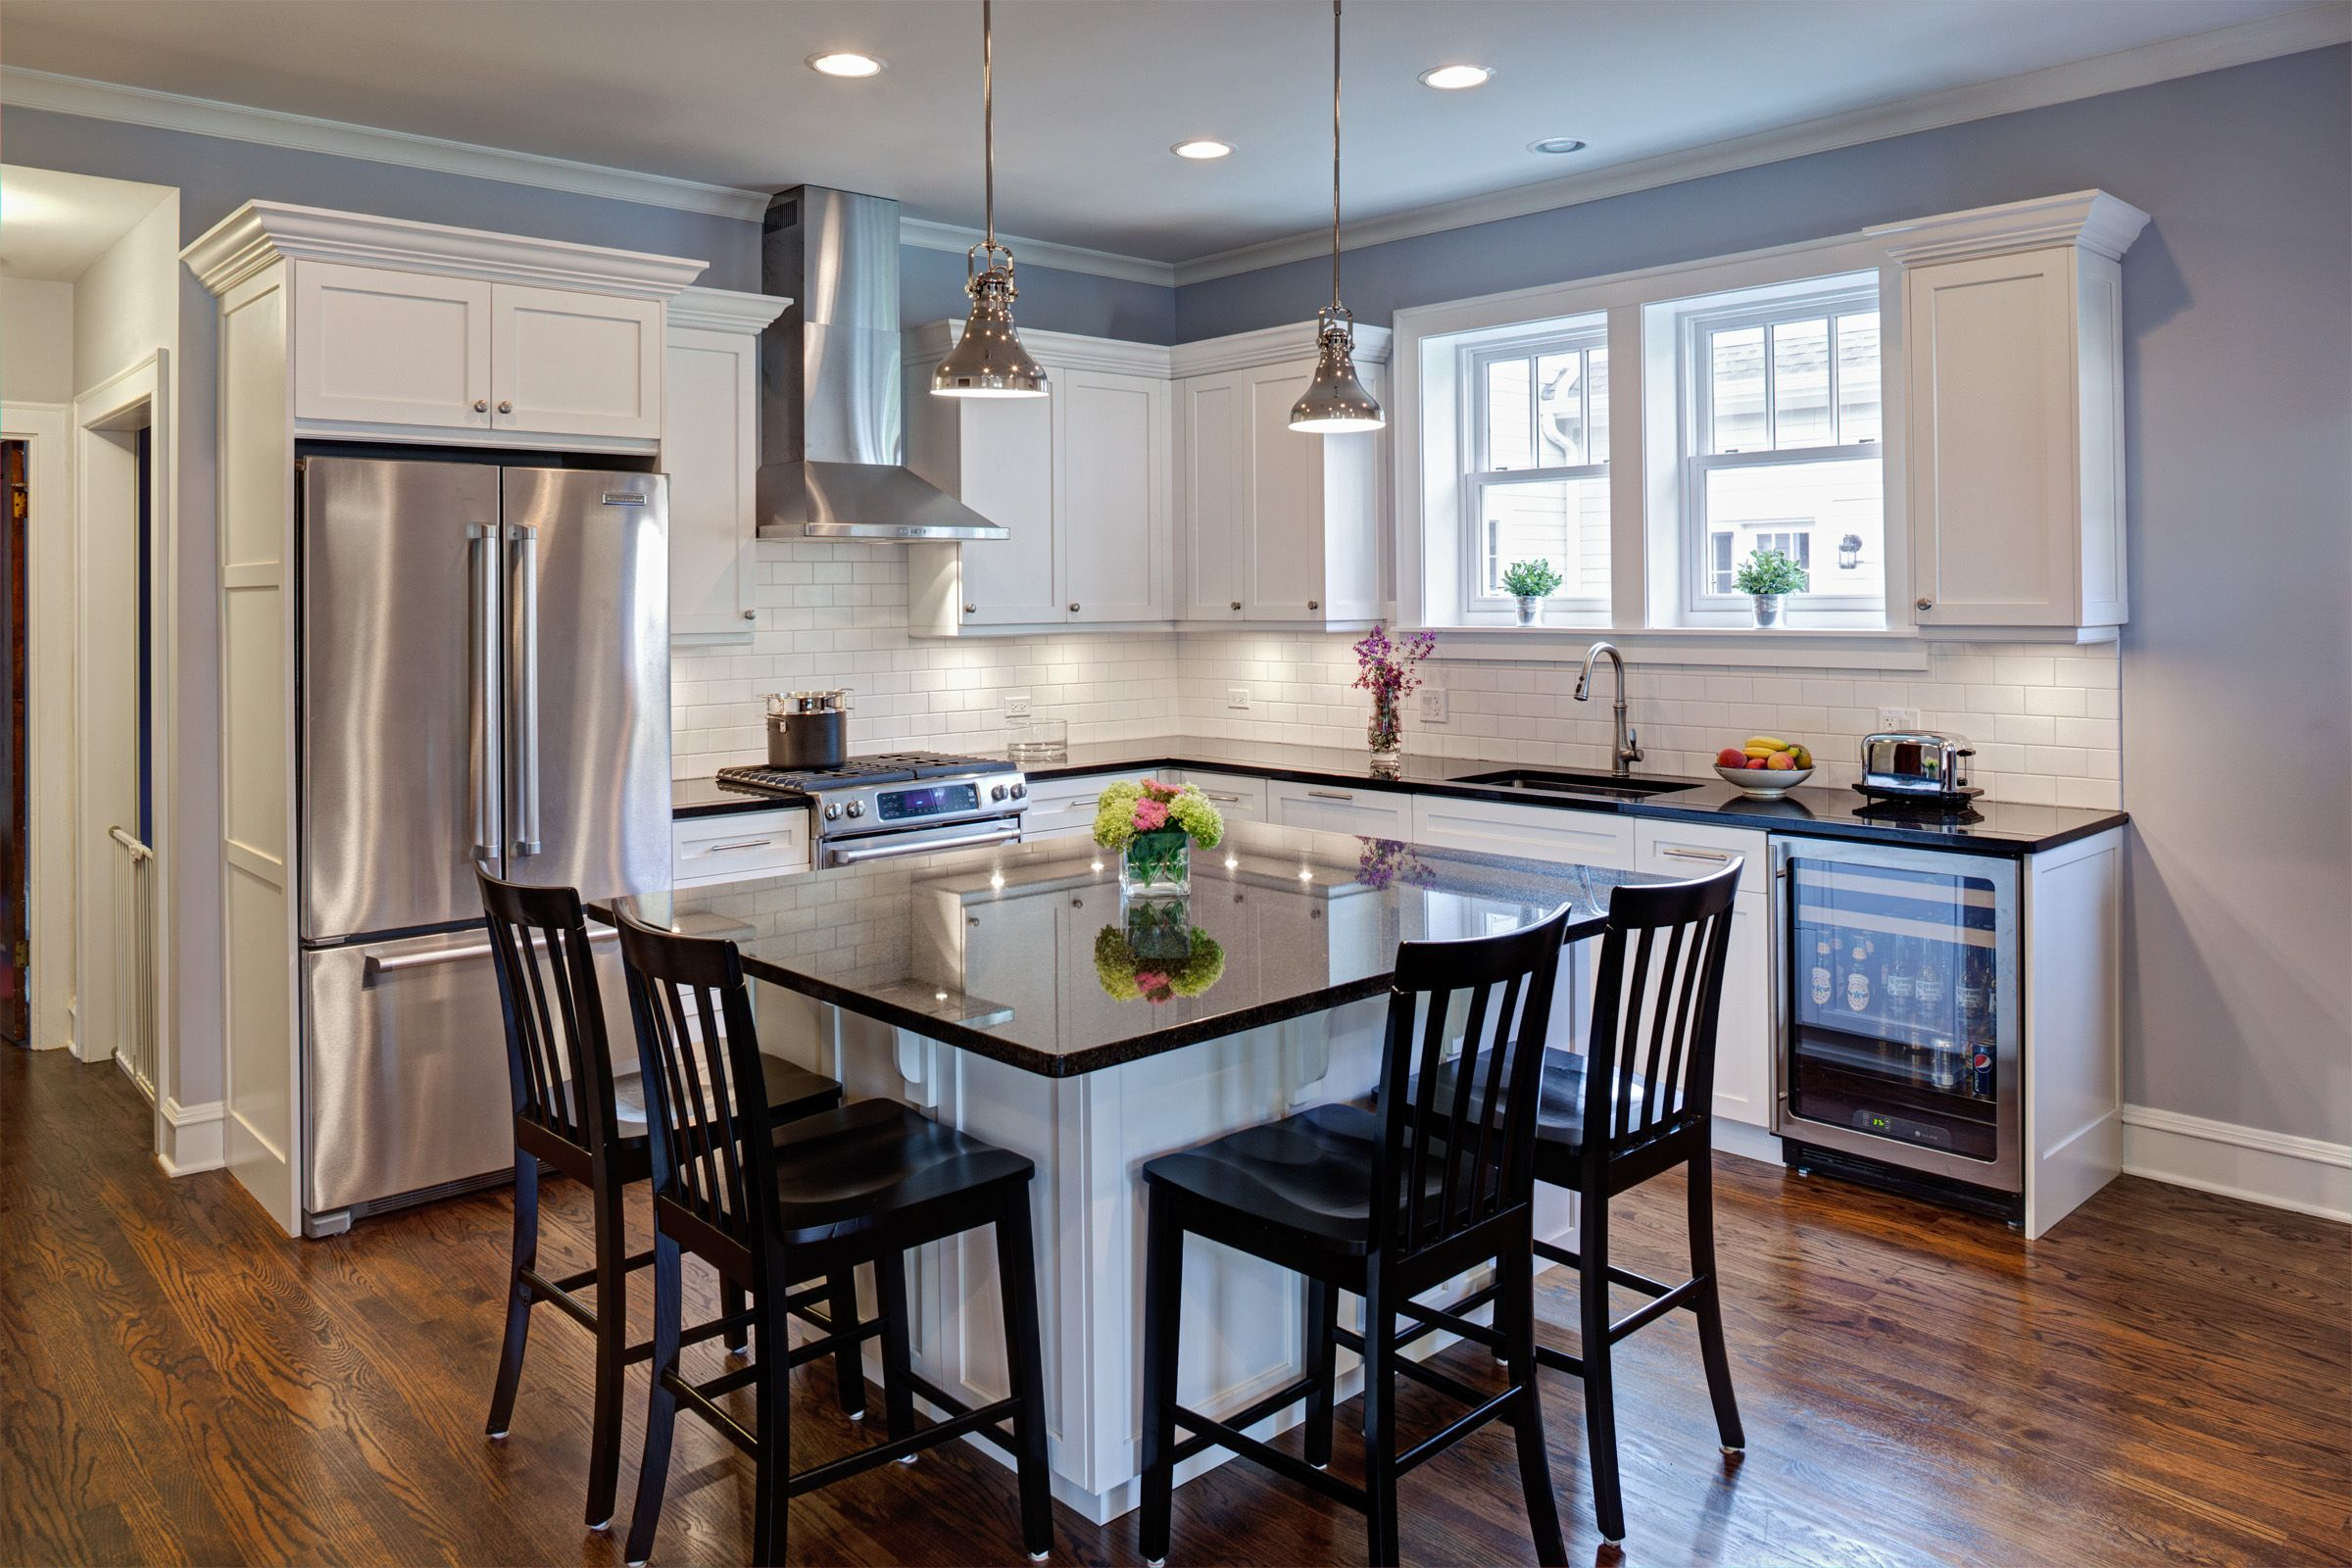 Evanston kitchen the island harbors functional amenities - Square kitchen island with seating ...